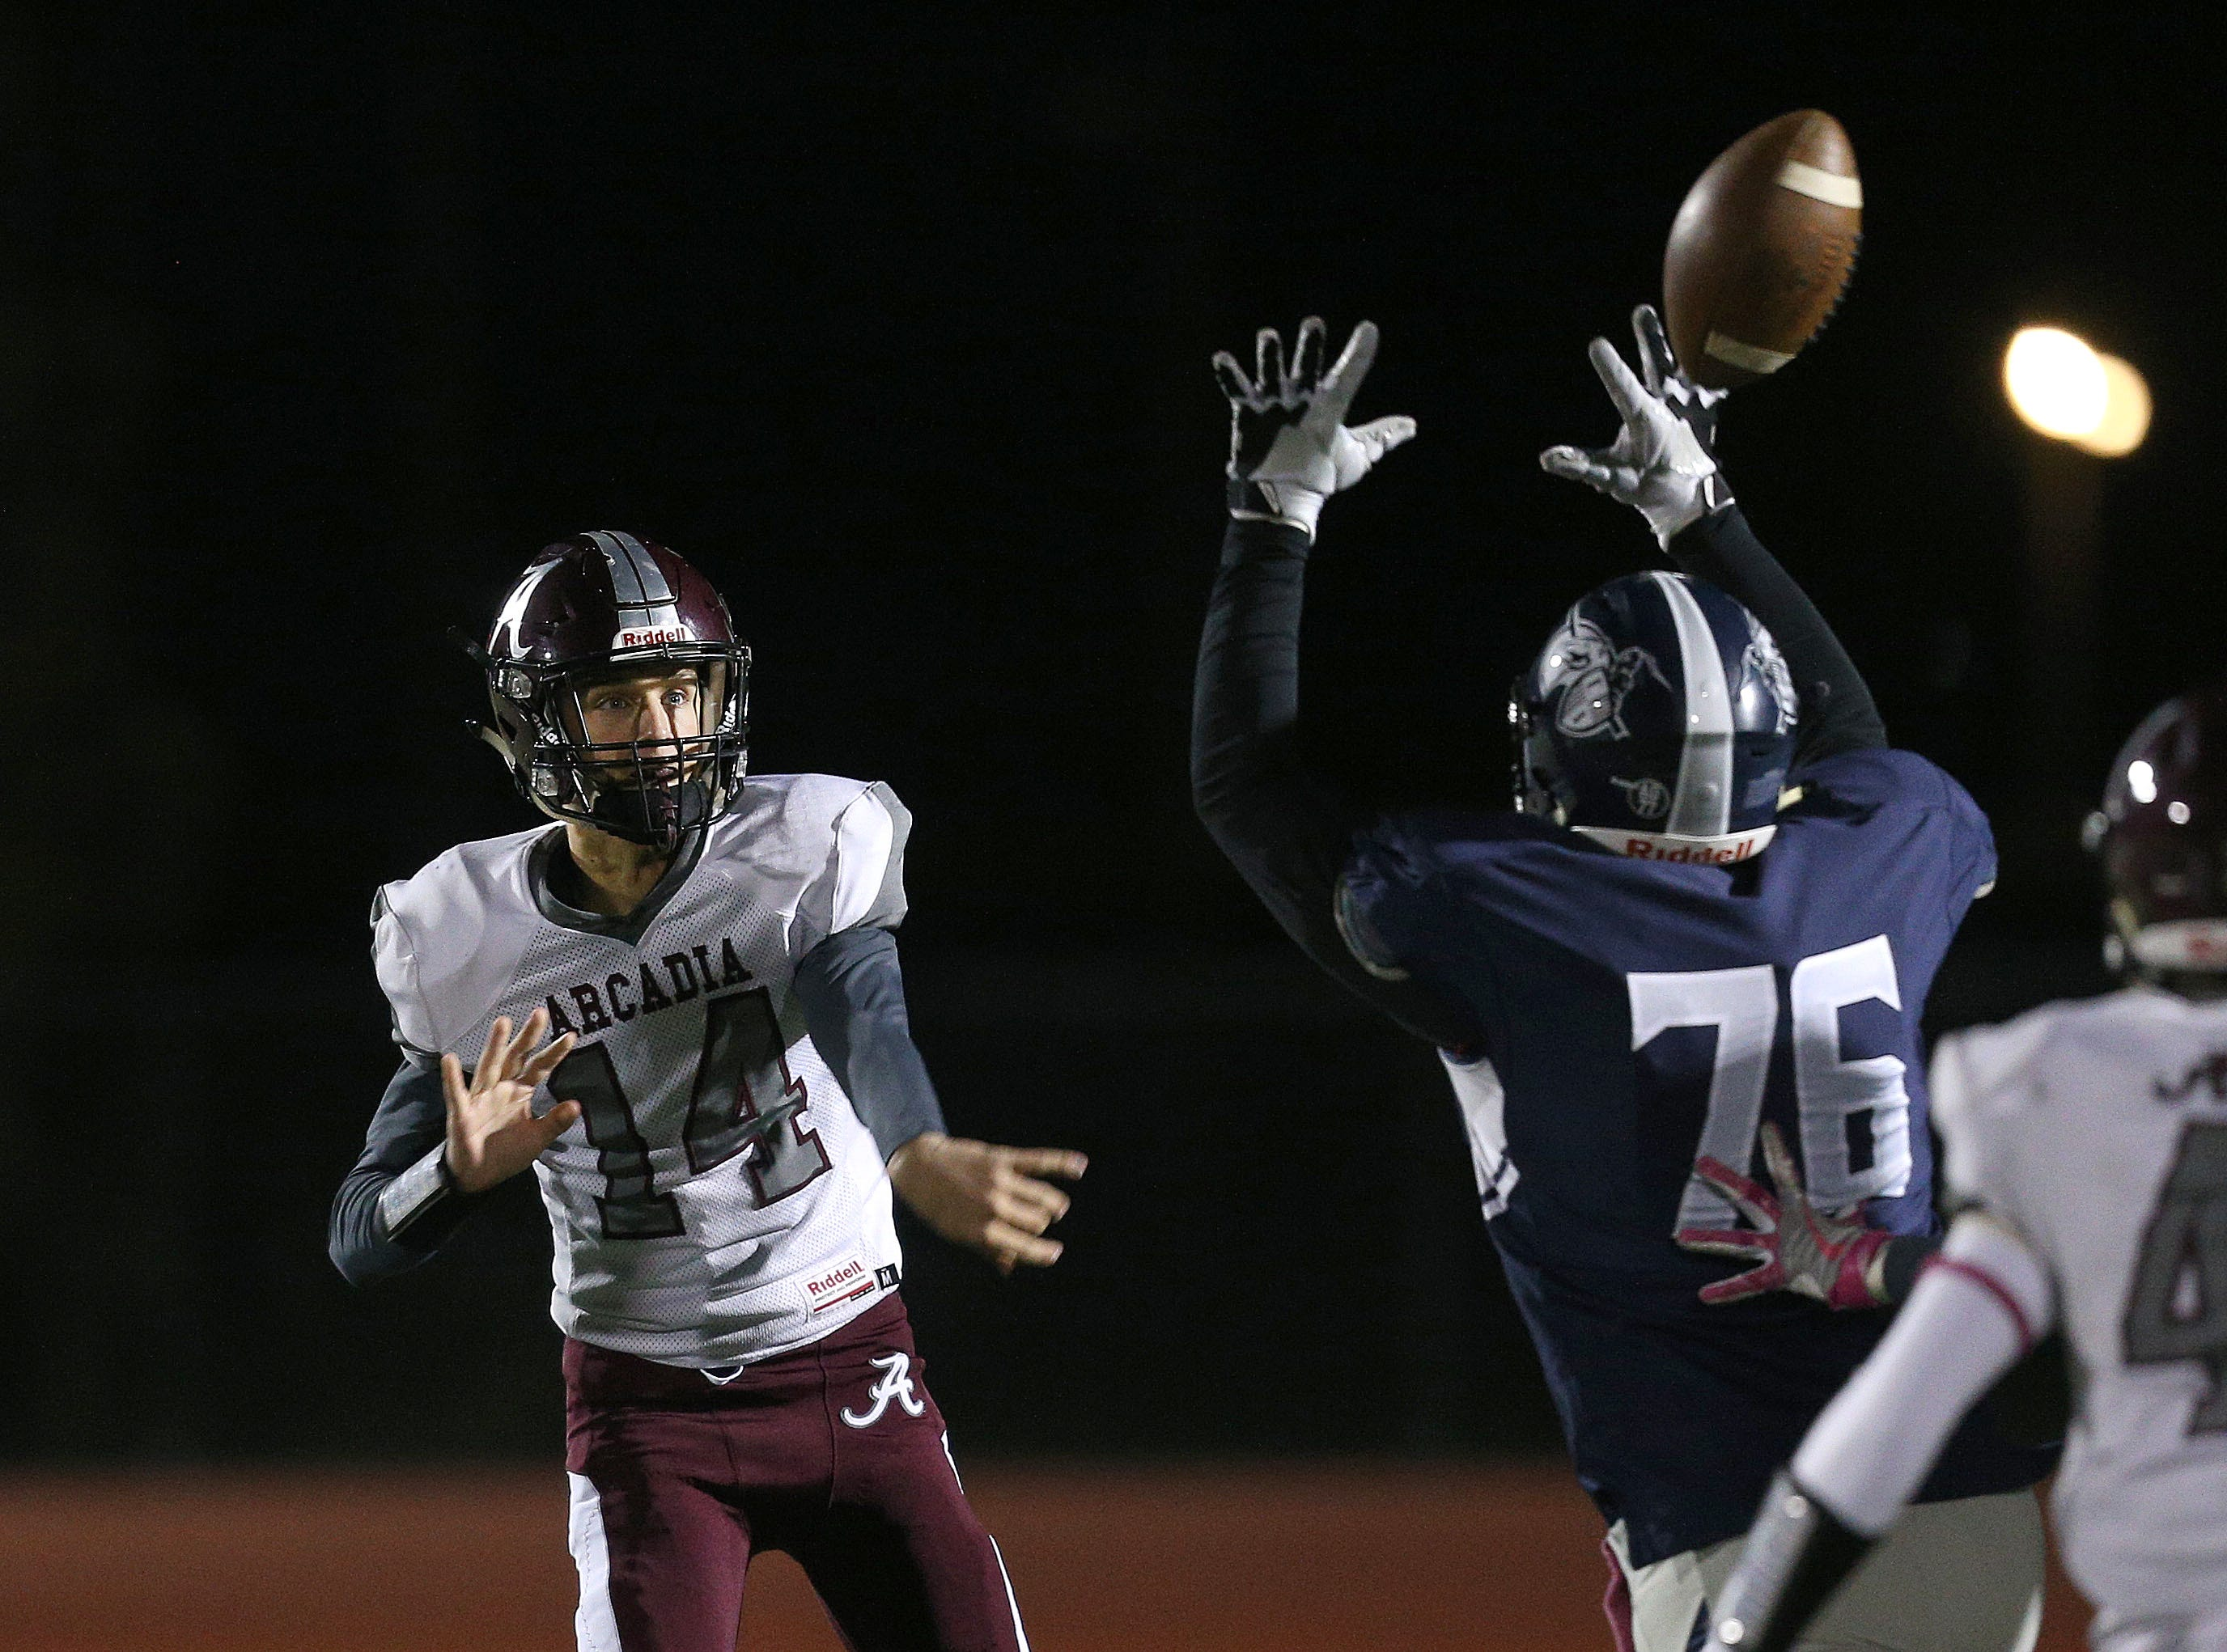 Arcadia quarterback Brian Shonitsky has this pass tipped at the line of scrimmage by Eastridge's Blerim Ilazi.